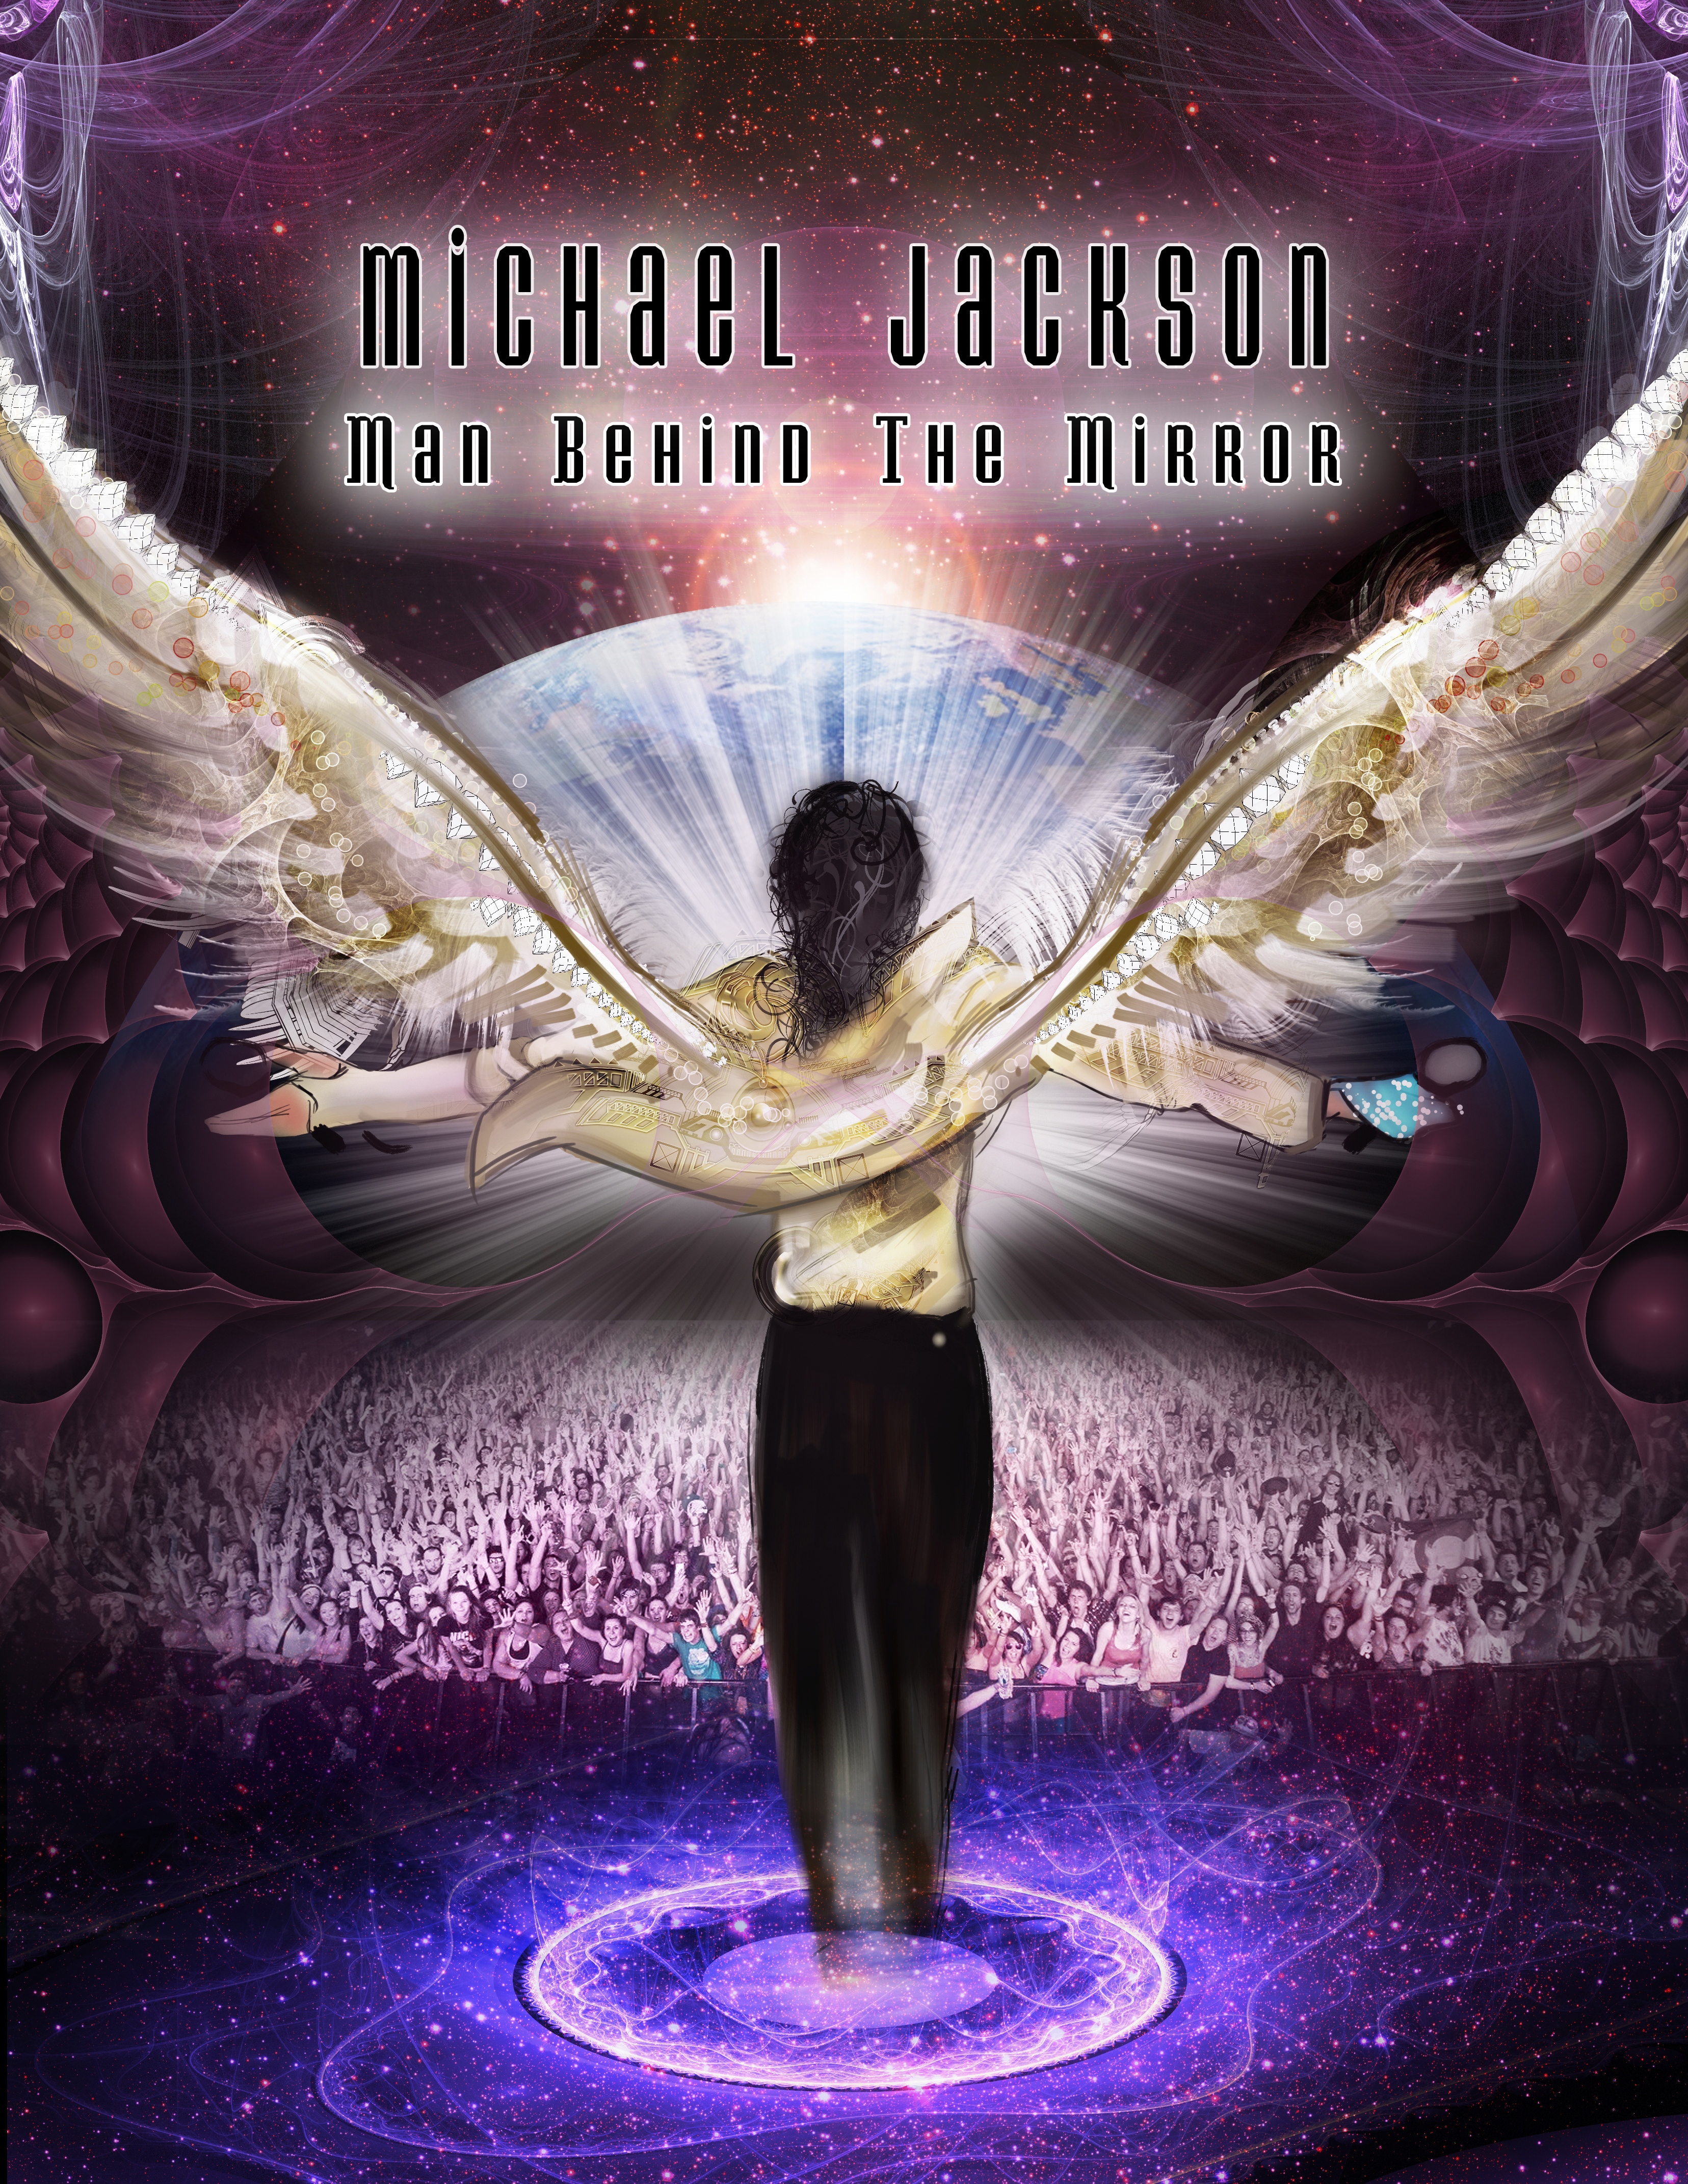 MICHAEL JACKSON - MAN BEHIND THE MIRROR to be Released on 5th Year Anniversary of Death, 6/25